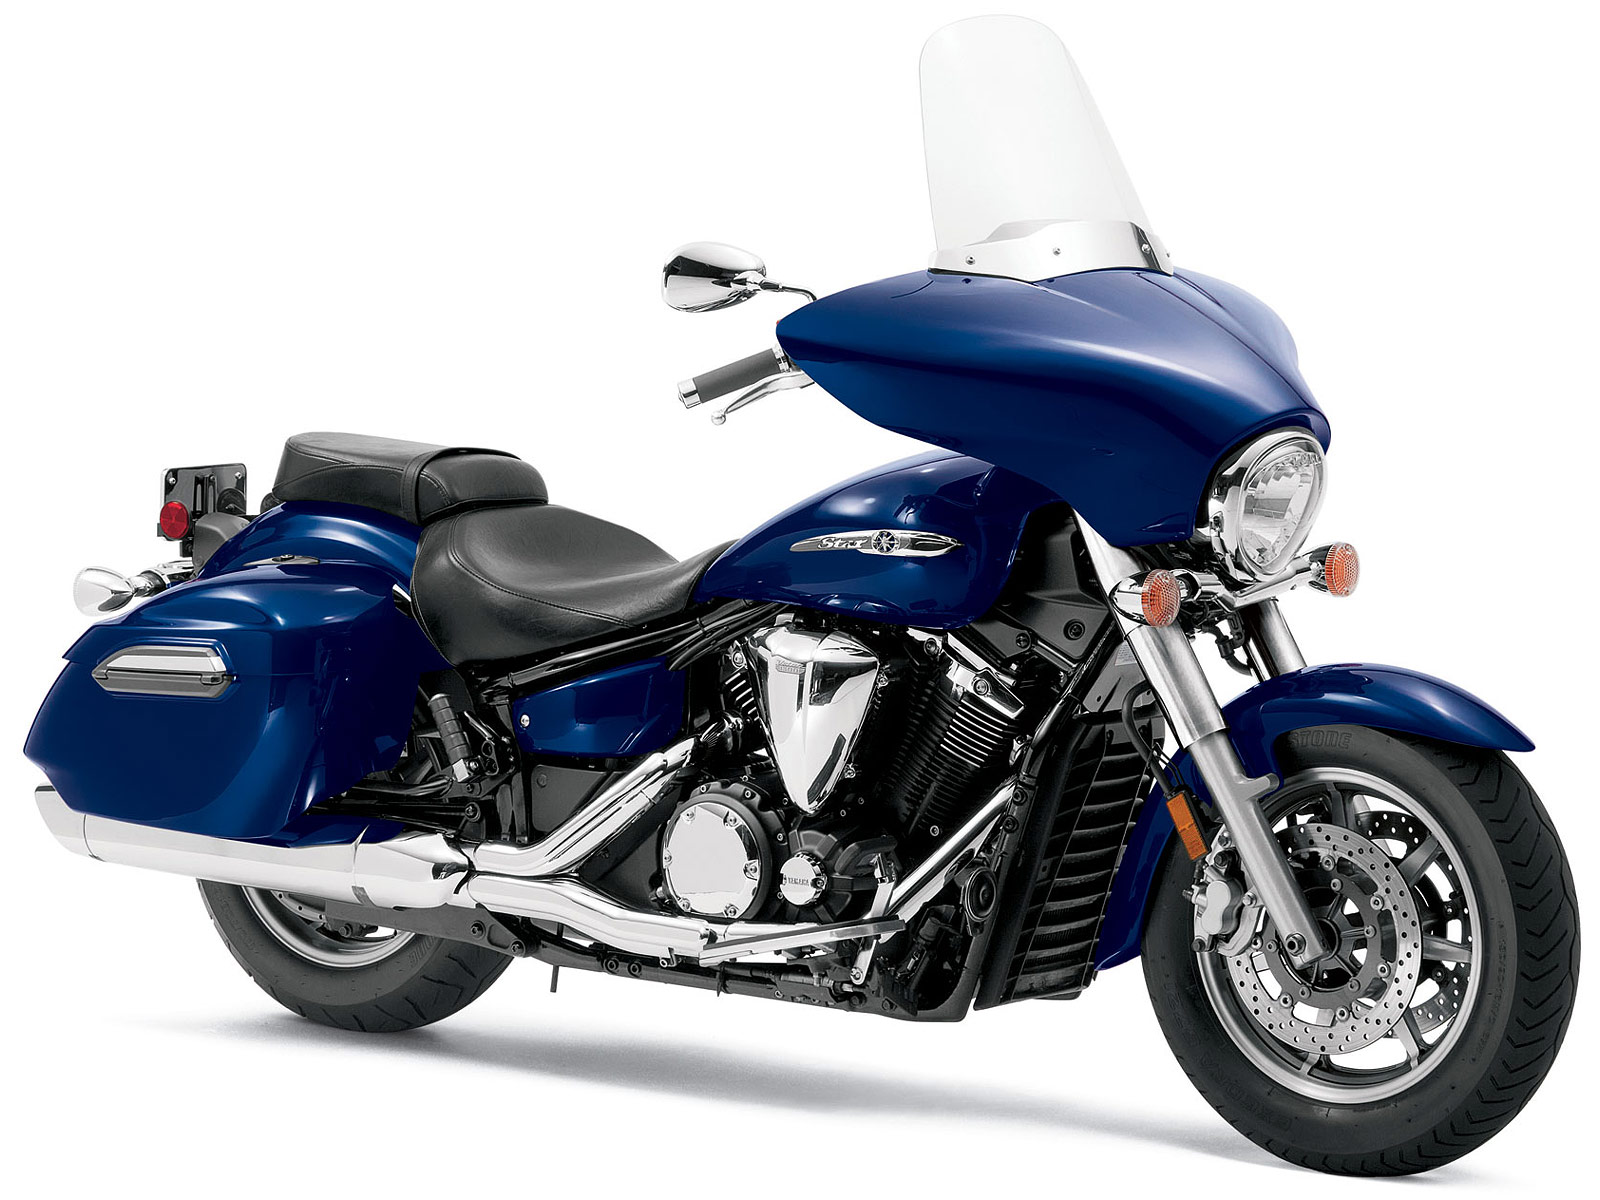 2013 yamaha pictures v star 1300 deluxe review specifications for Yamaha 1300 motorcycle